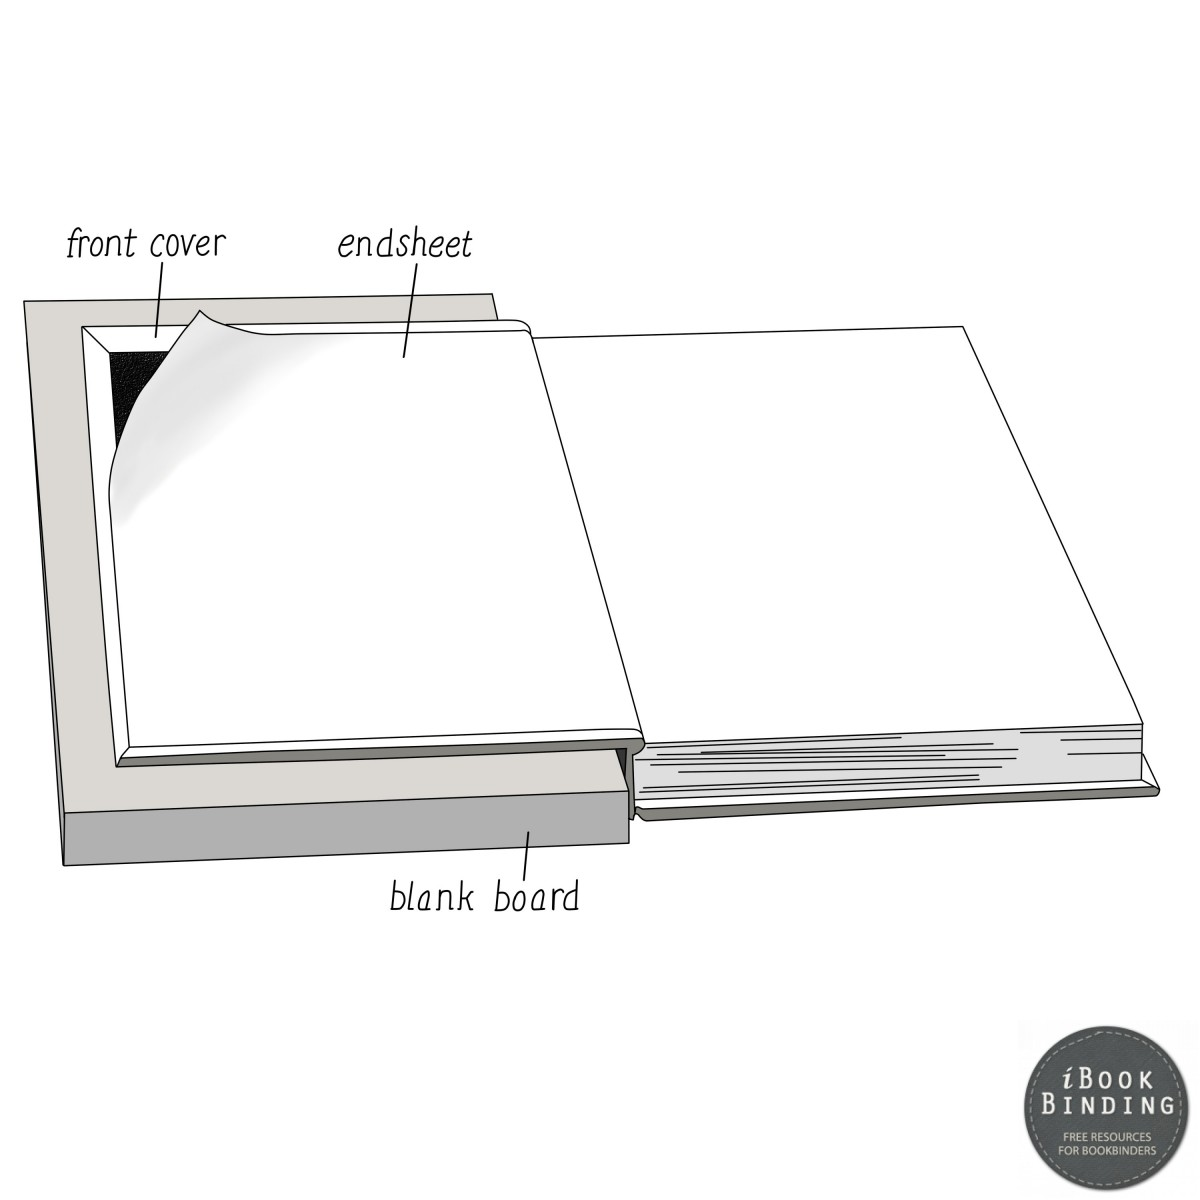 104 - Aligning Endsheets with Cover Board during Bookbinding Constuction